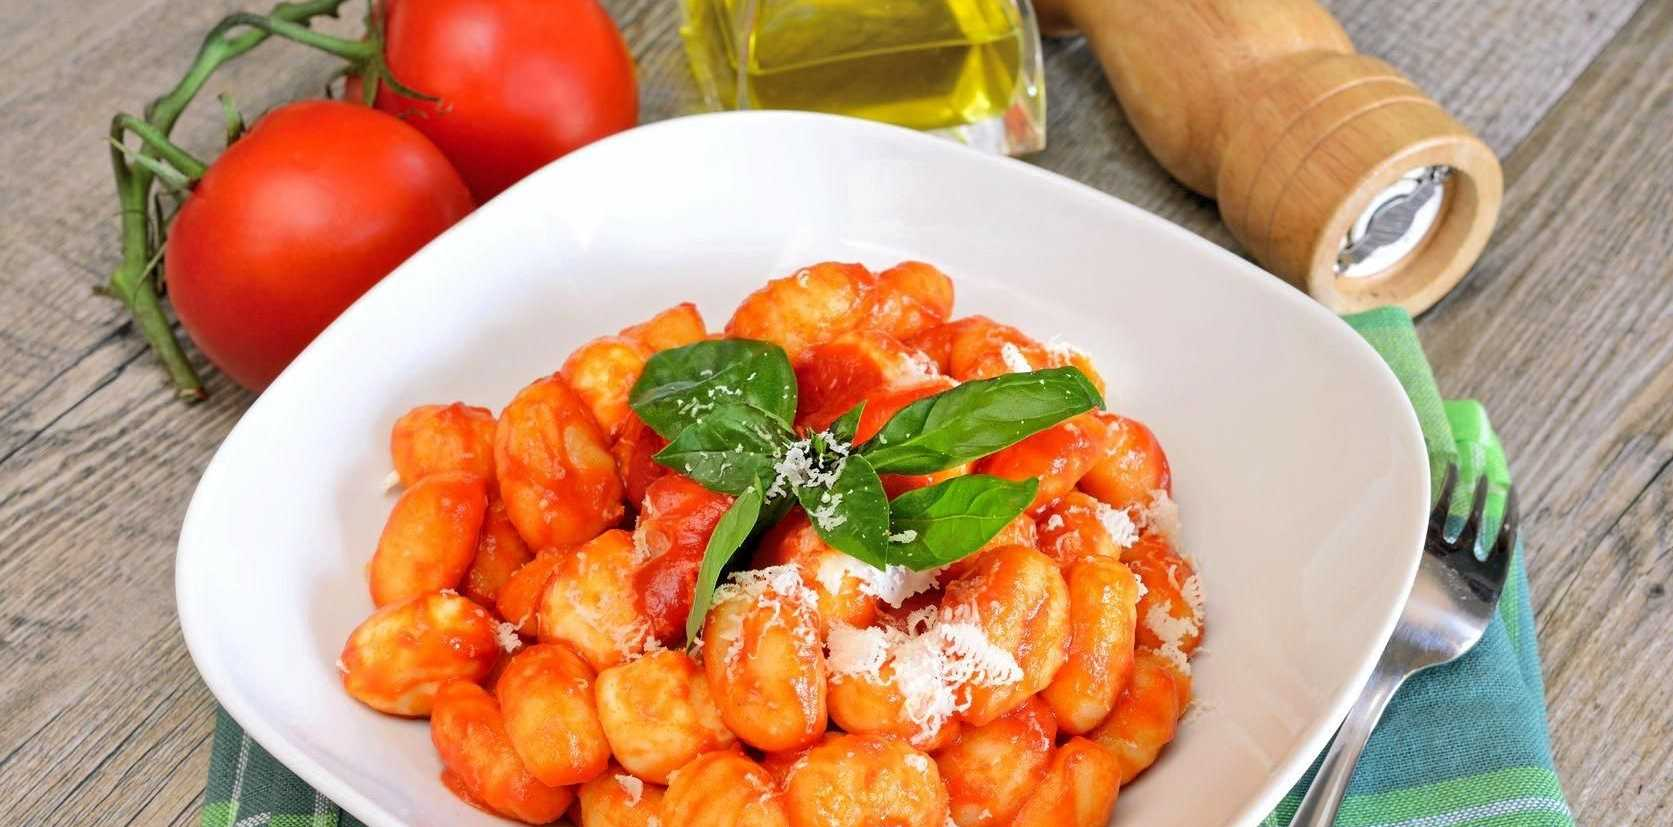 Light-as air-gnocchi are made easily with ricotta; serve with your favourite pasta sauce.